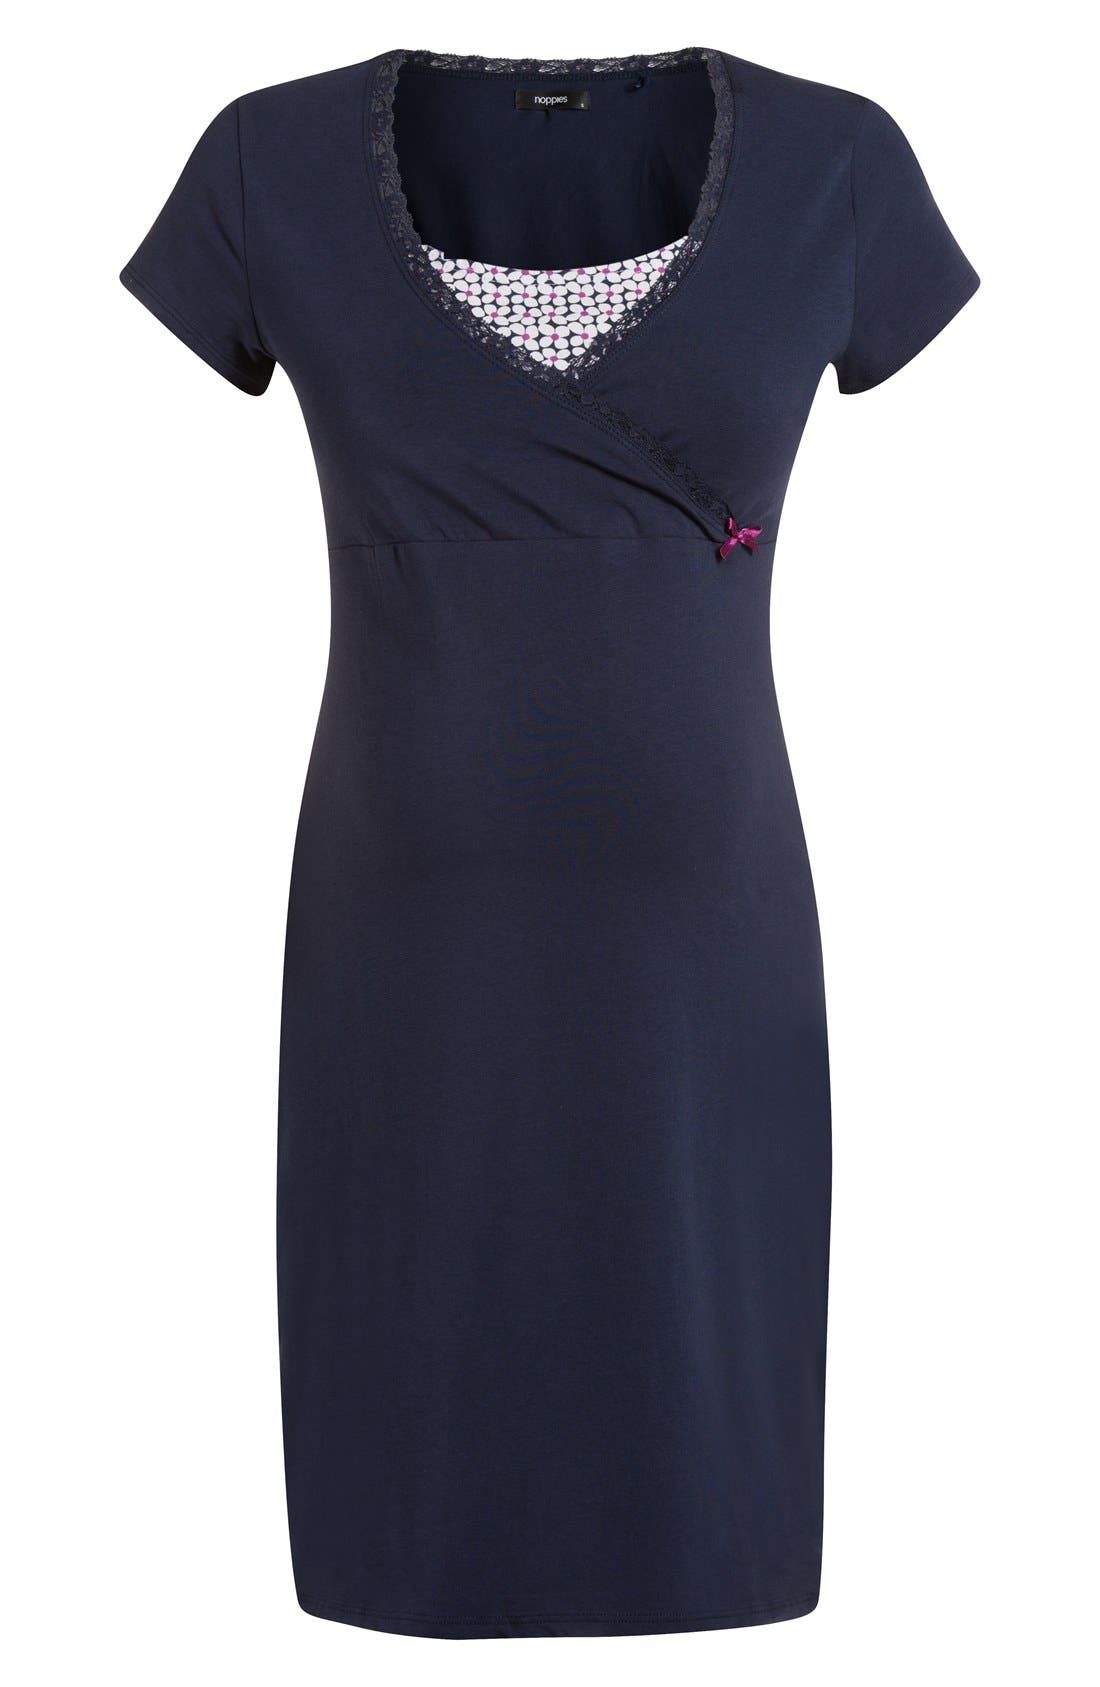 'Marni' Maternity/Nursing Jersey Dress,                         Main,                         color, NAVY